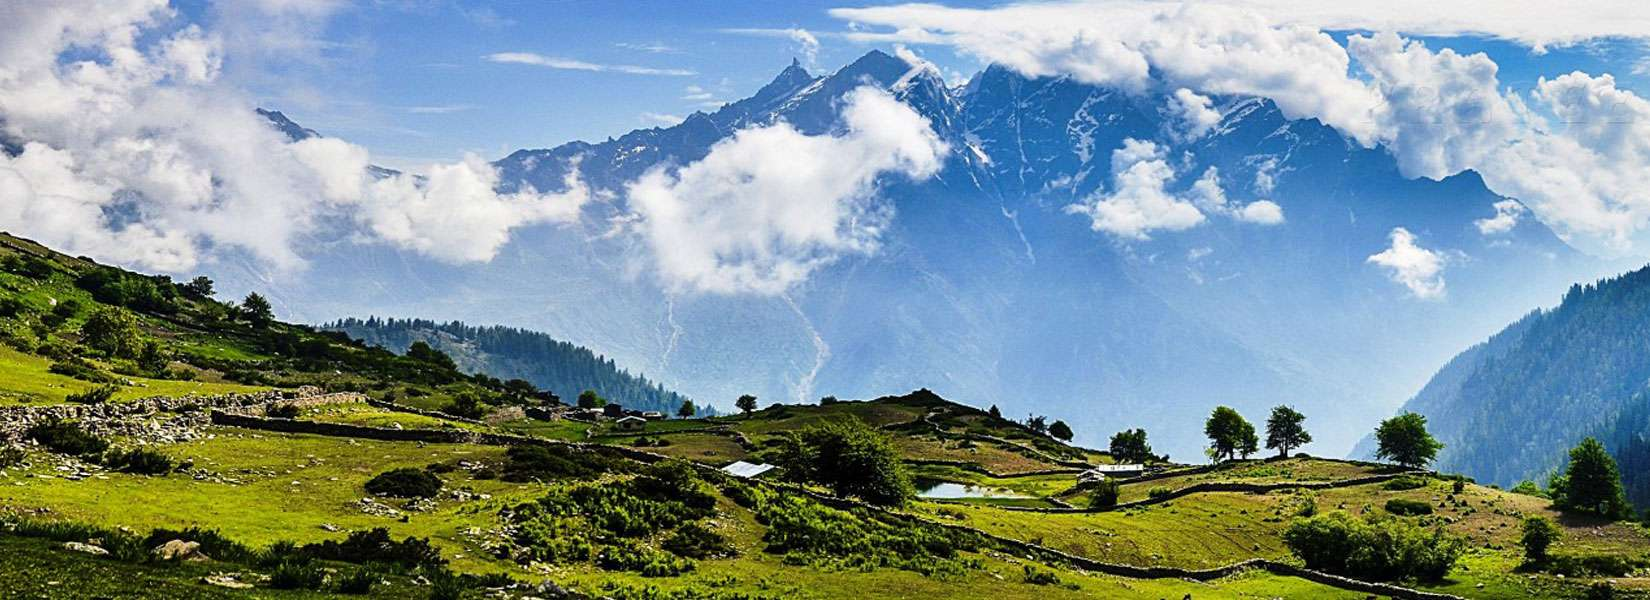 Rupina La Pass - new trekking trail in Nepal